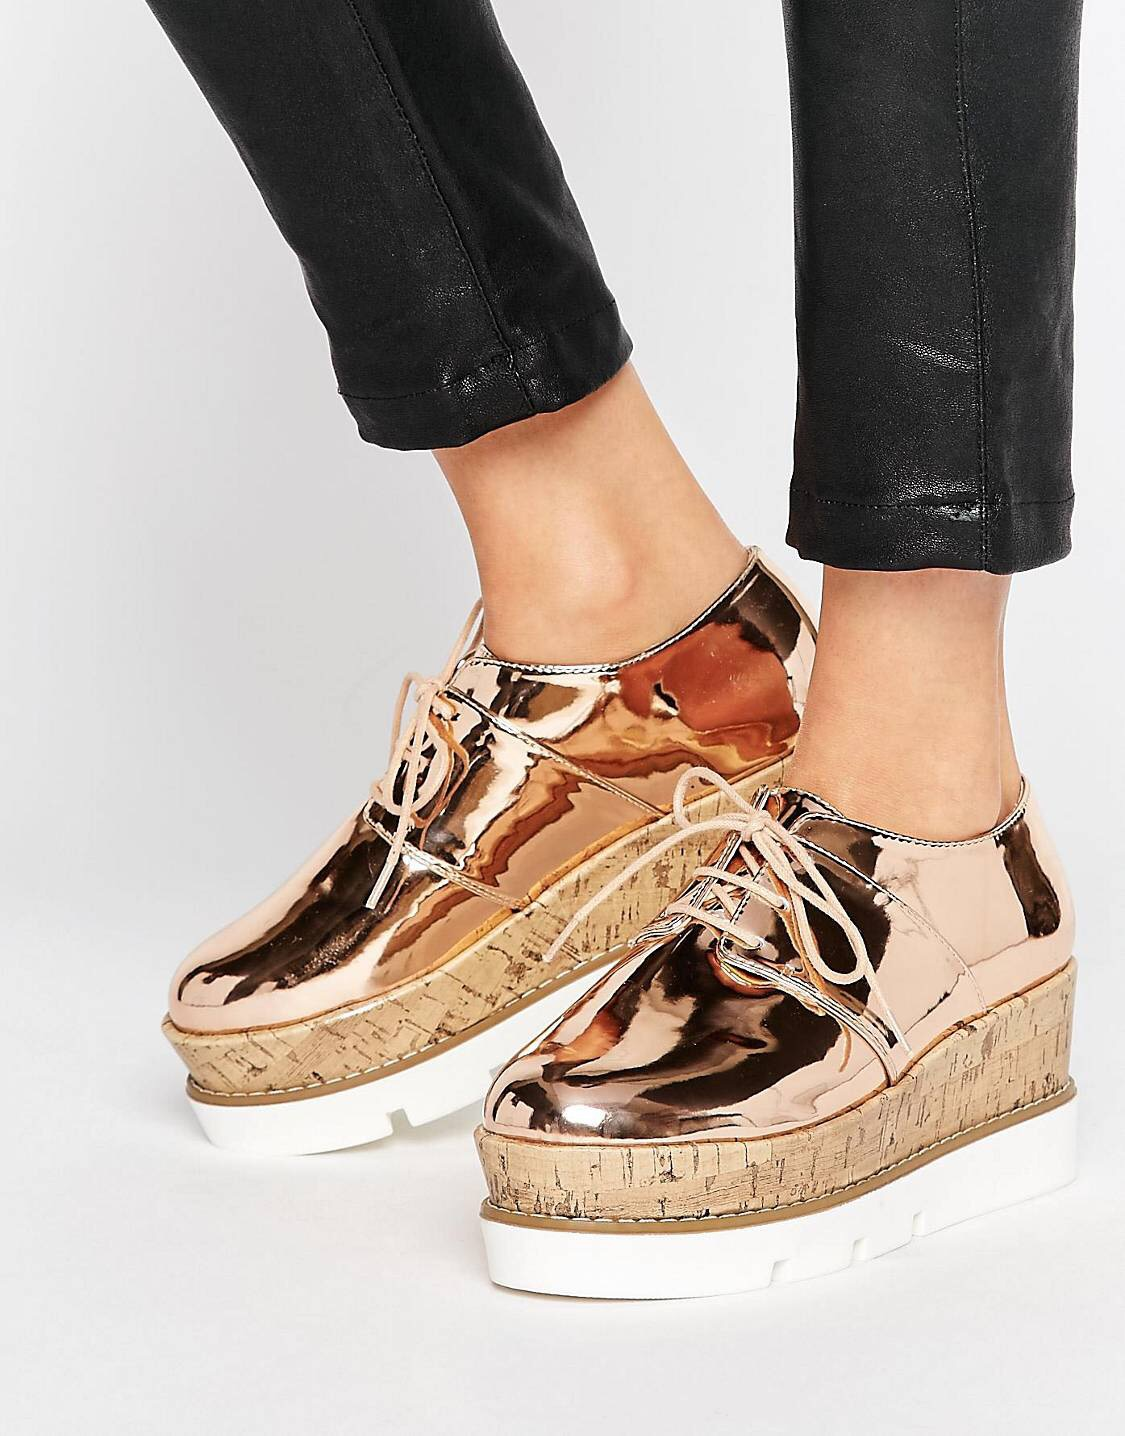 £22.50 - clearly metallic platform shoes are calling me.